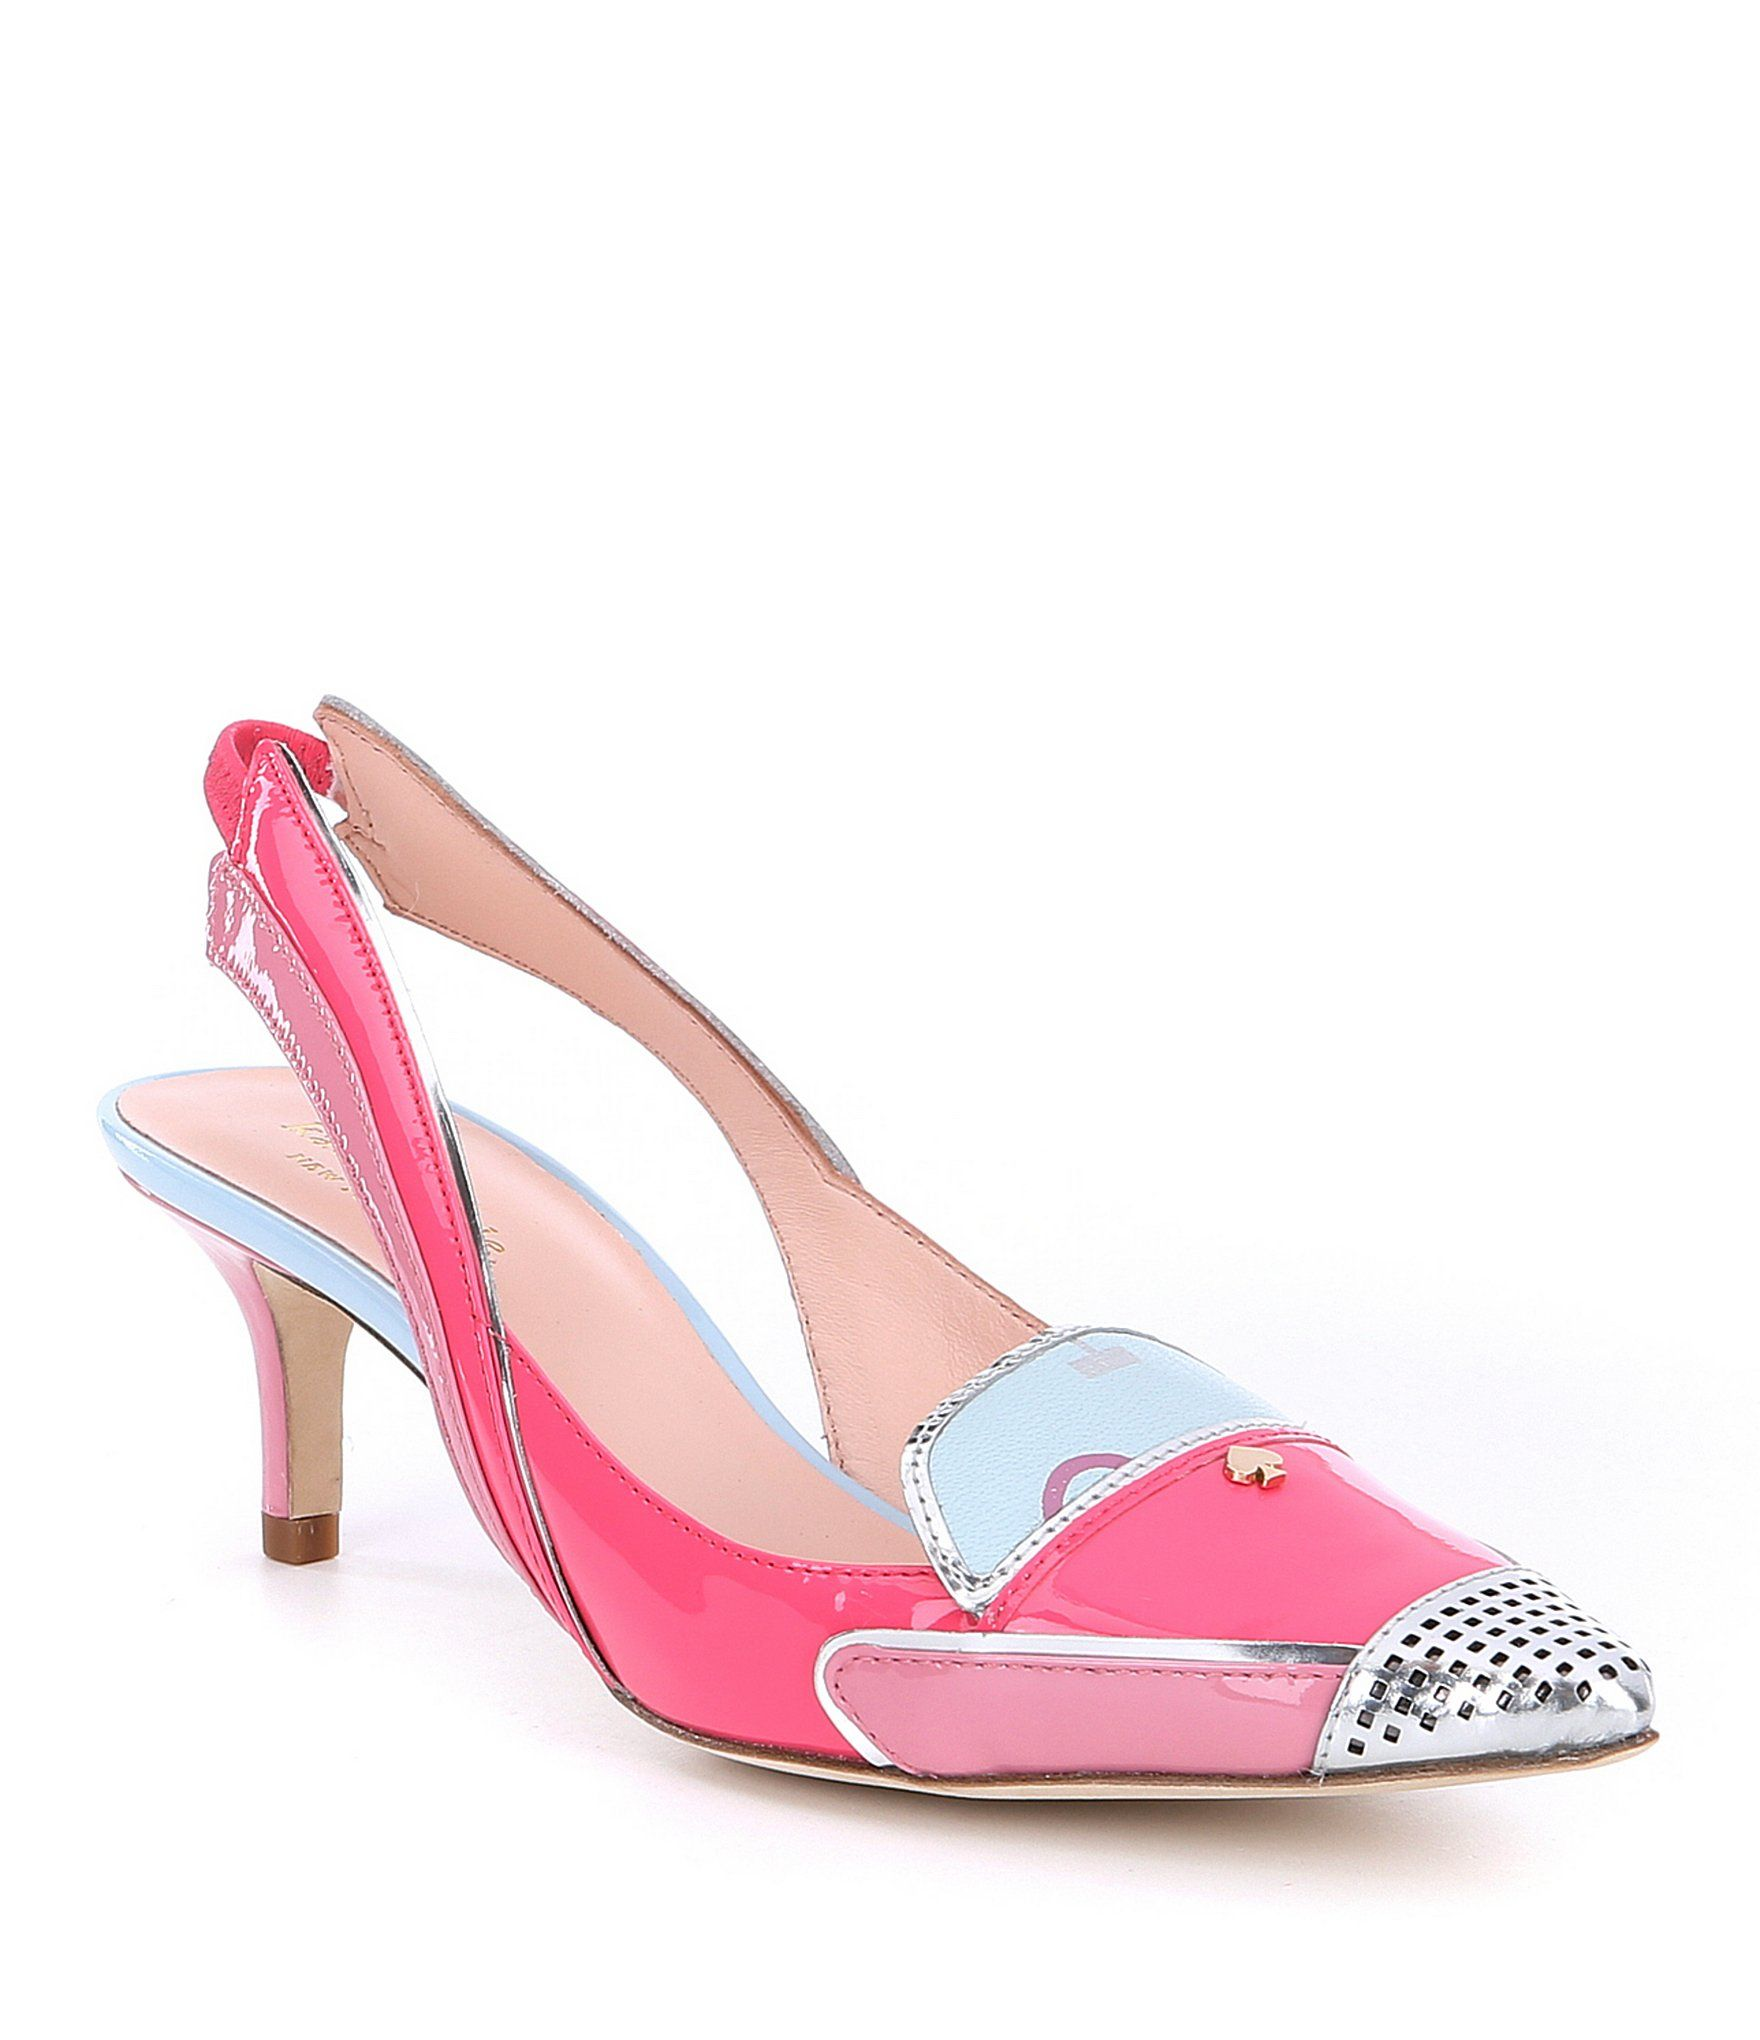 413cbe891f59 Shop for kate spade new york Paulina Patent Leather Cadillac Car Slingback  Pumps at Dillards.com. Visit Dillards.com to find clothing